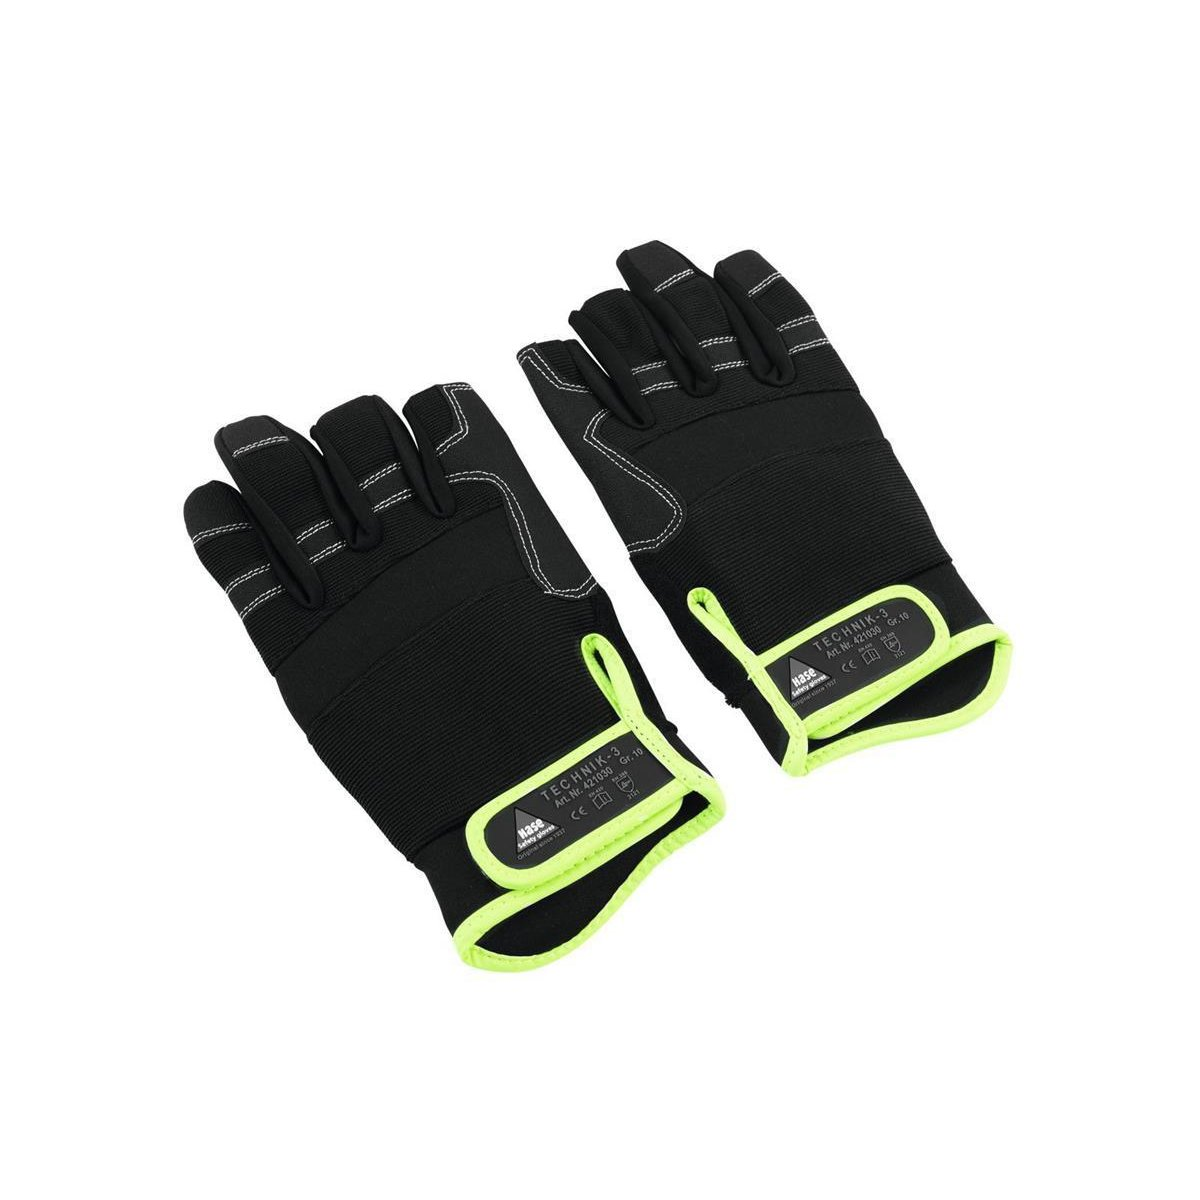 HASE Gloves 3 Finger, size M